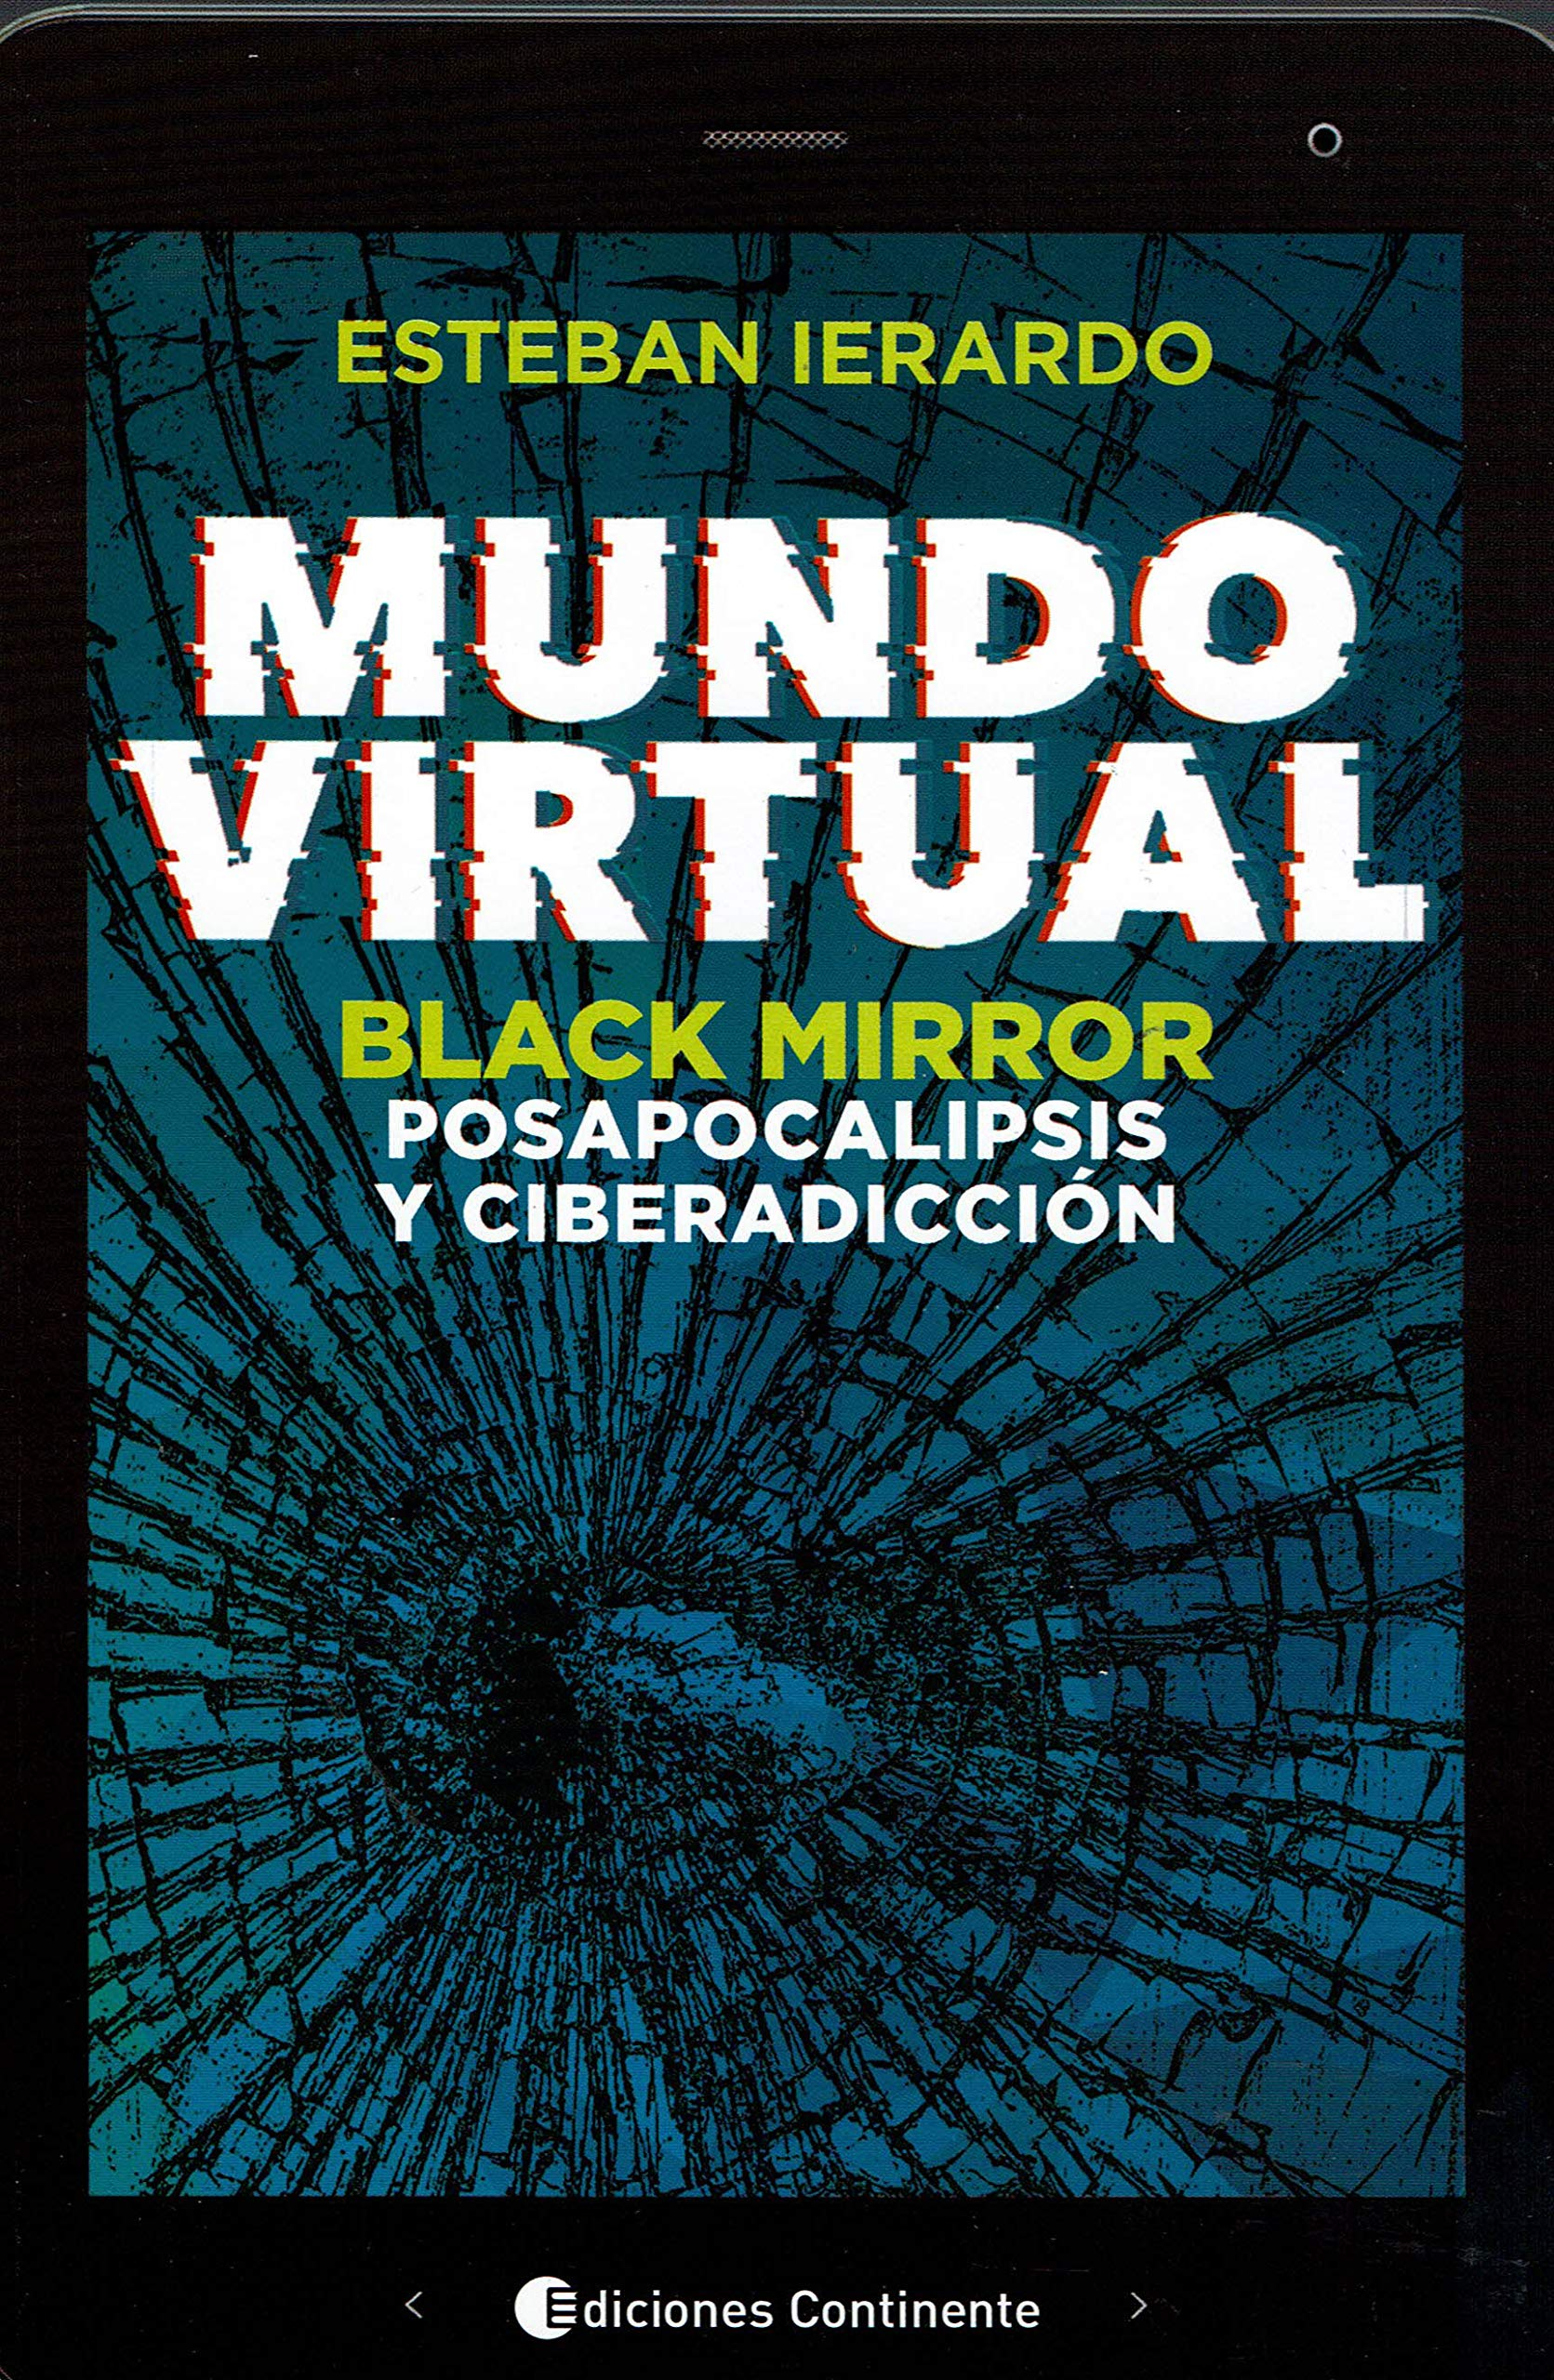 MUNDO VIRTUAL. BLACK MIRROR. POSAPOCALIPSIS Y CIBERADICCIÓN: Amazon.es: ESTEBAN IERARDO: Libros